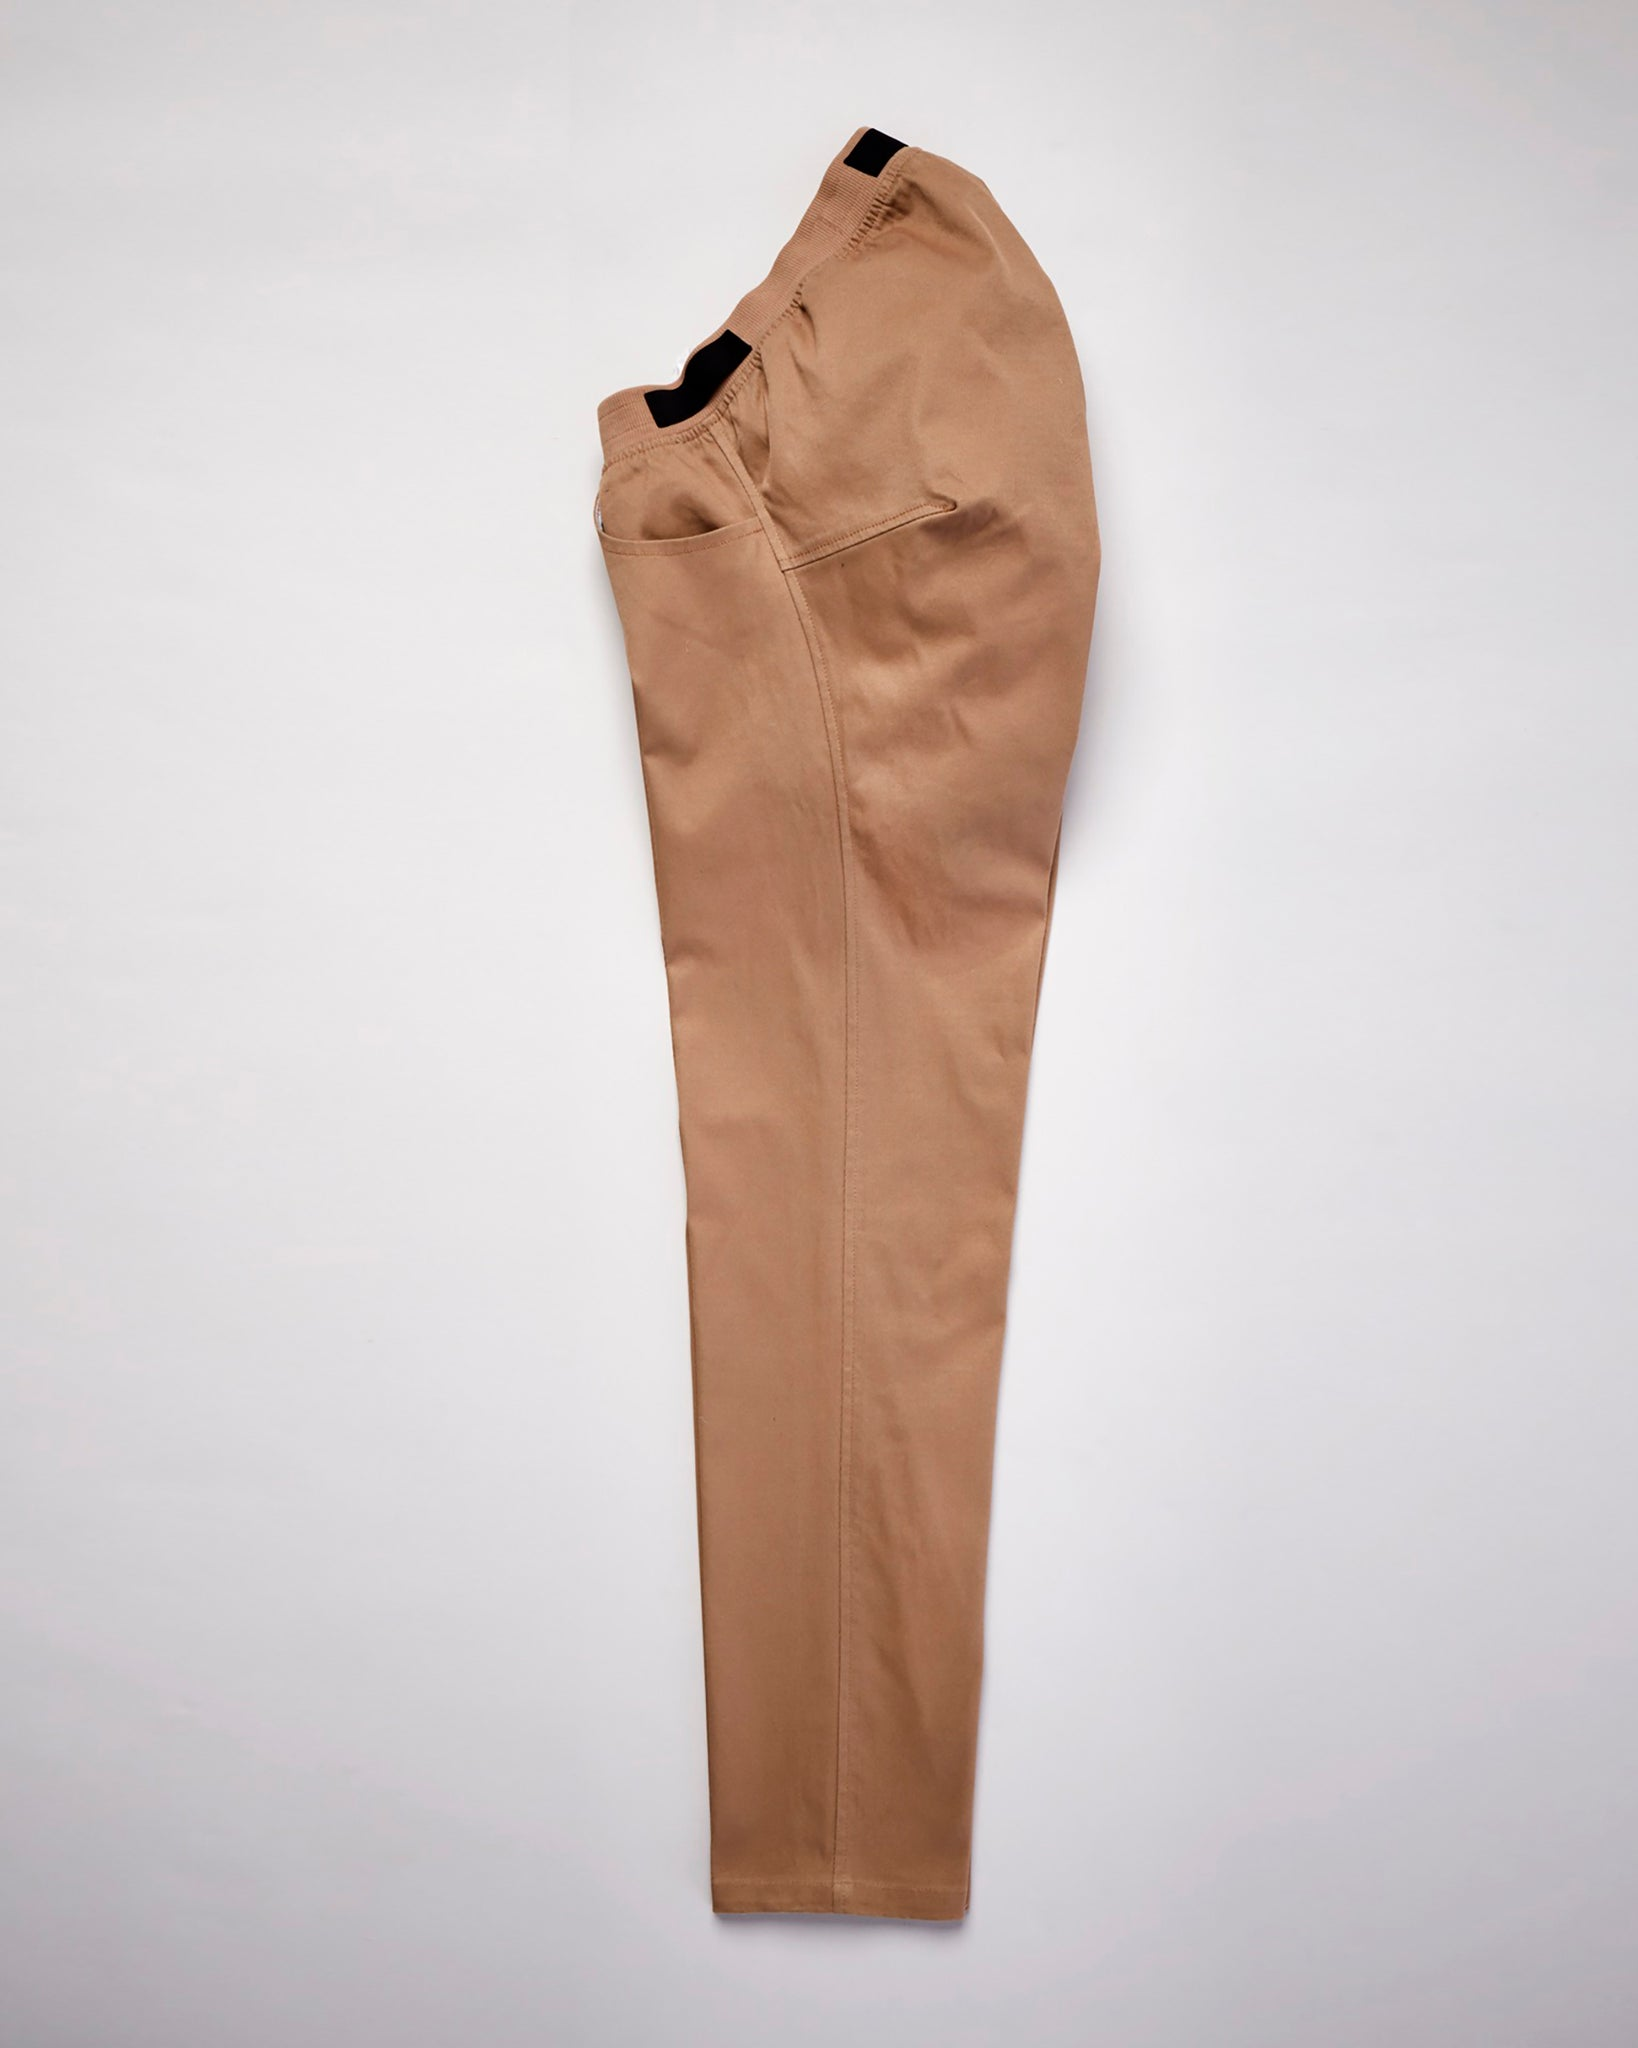 Seated Chino Elastic Waist - Khaki